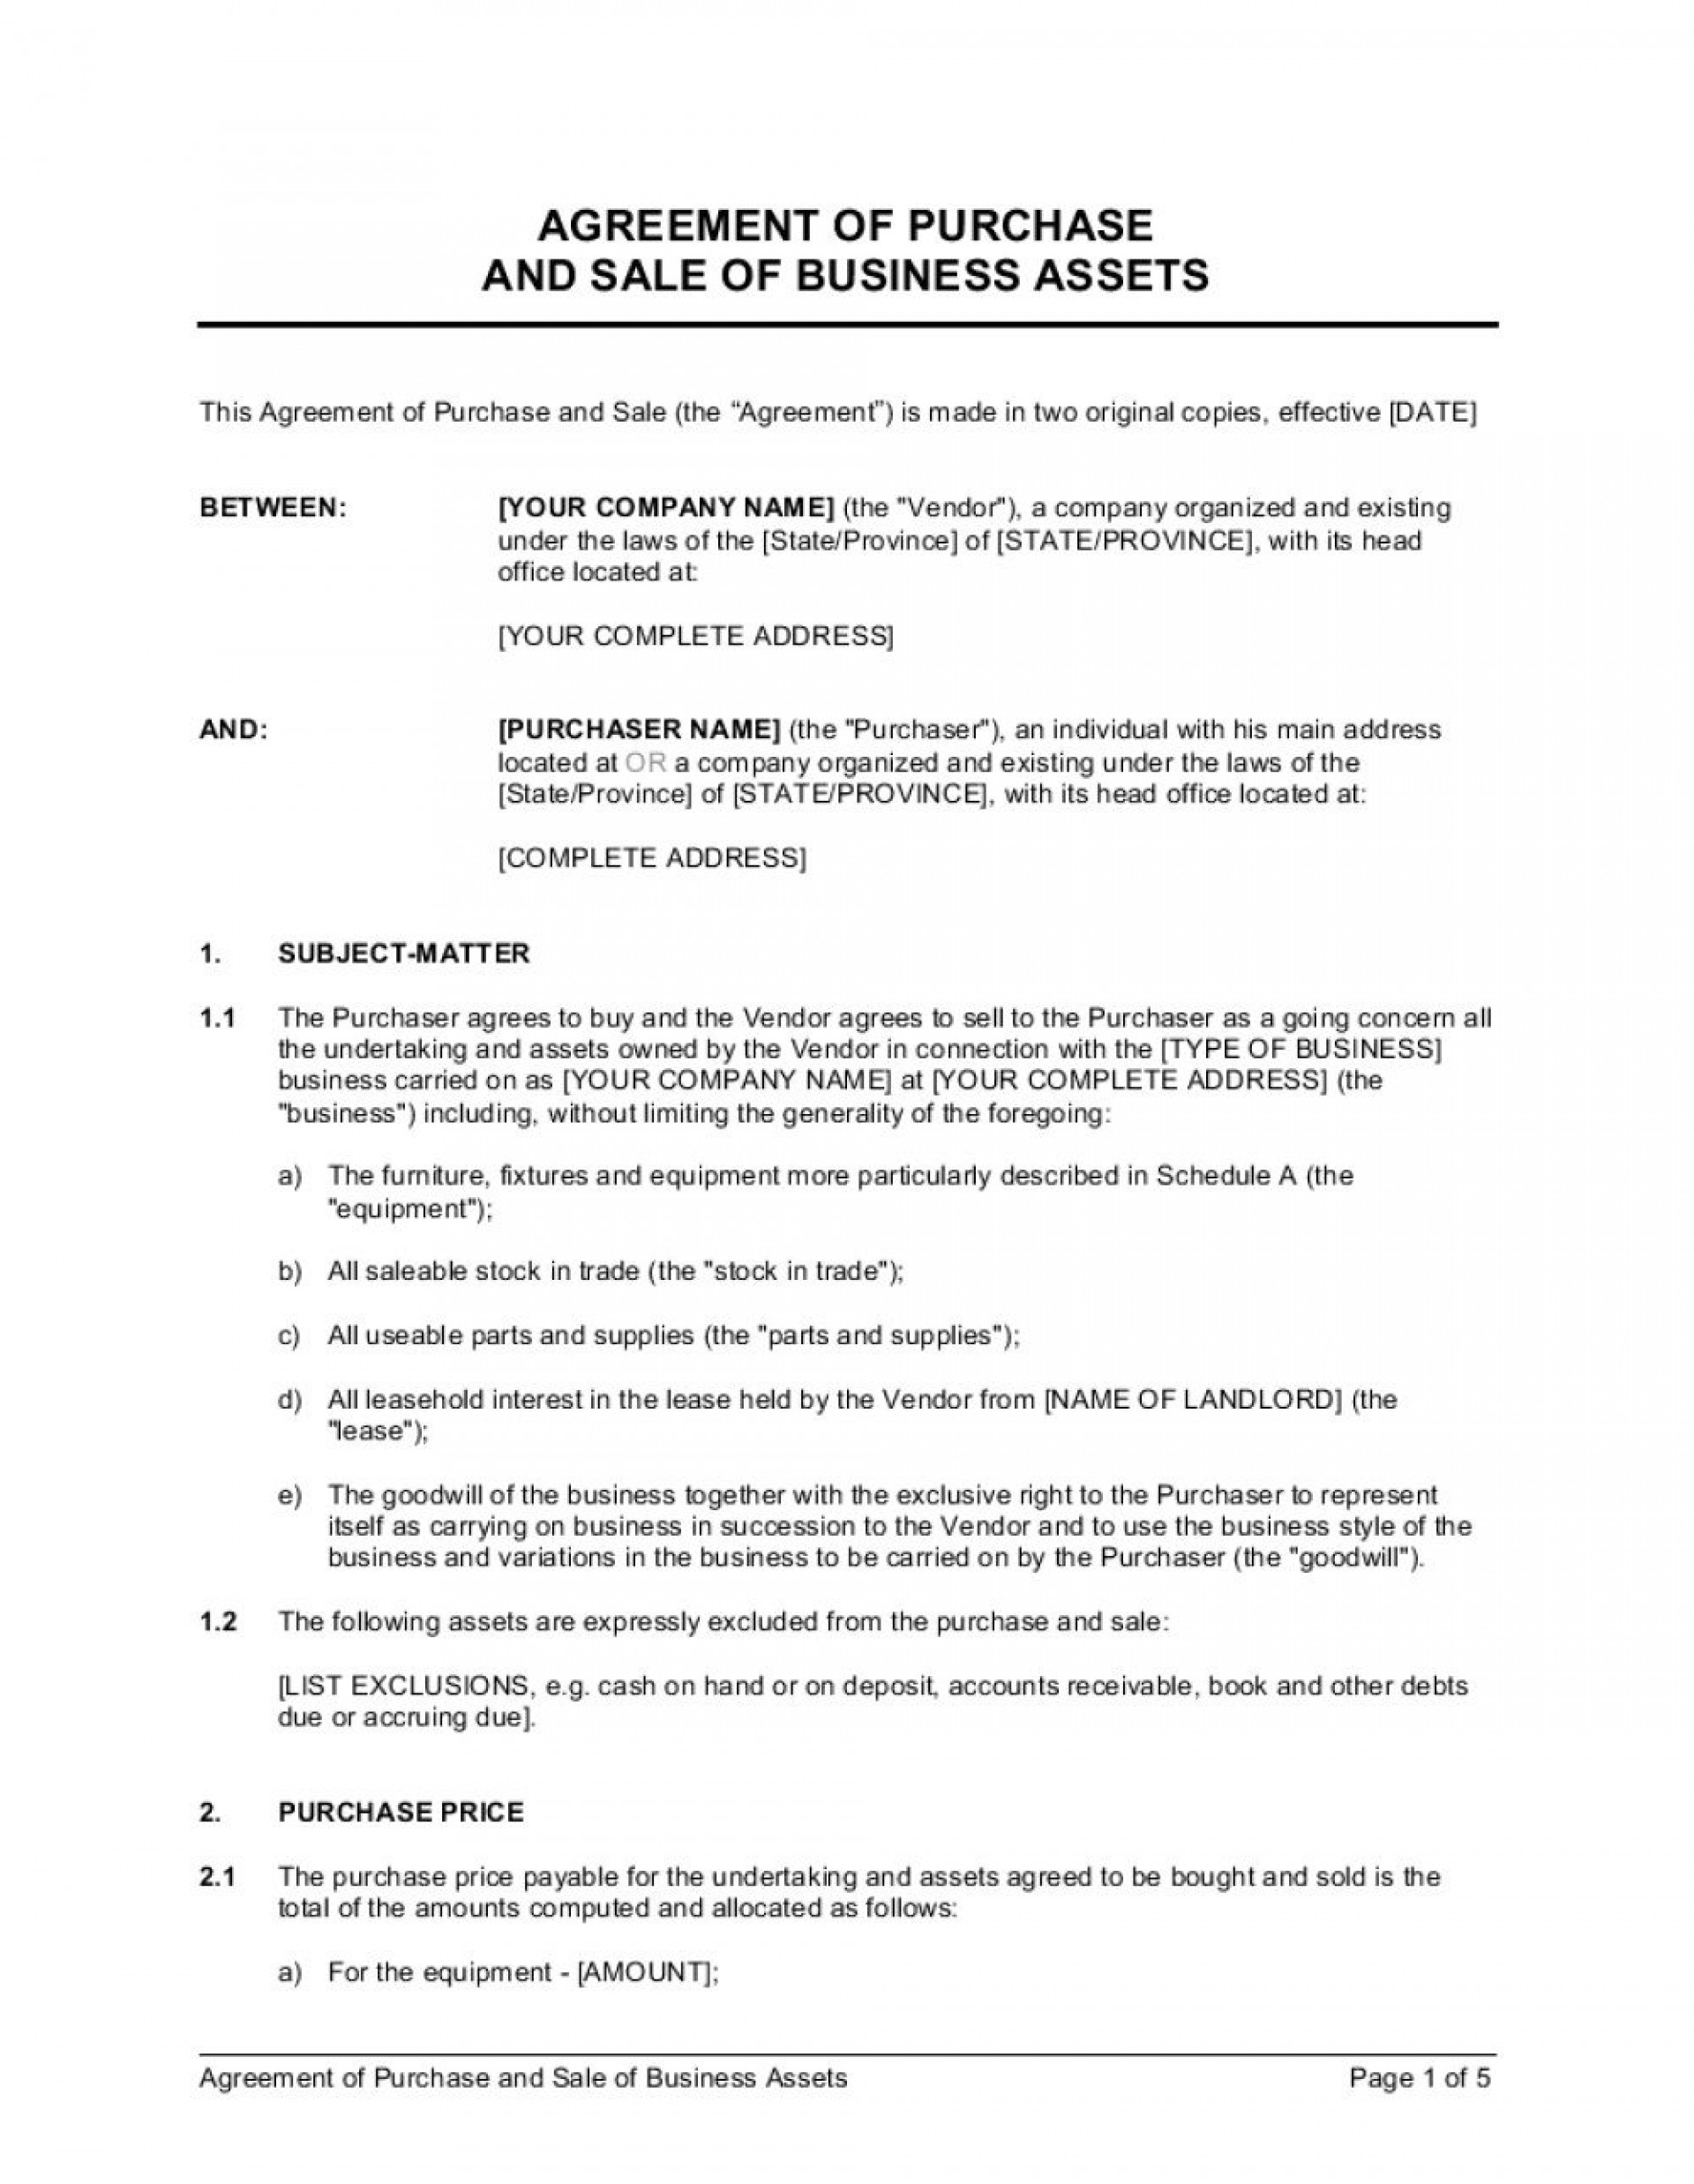 000 Outstanding Purchase Sale Agreement Template High Def  Uk & Nz Free Busines And1920